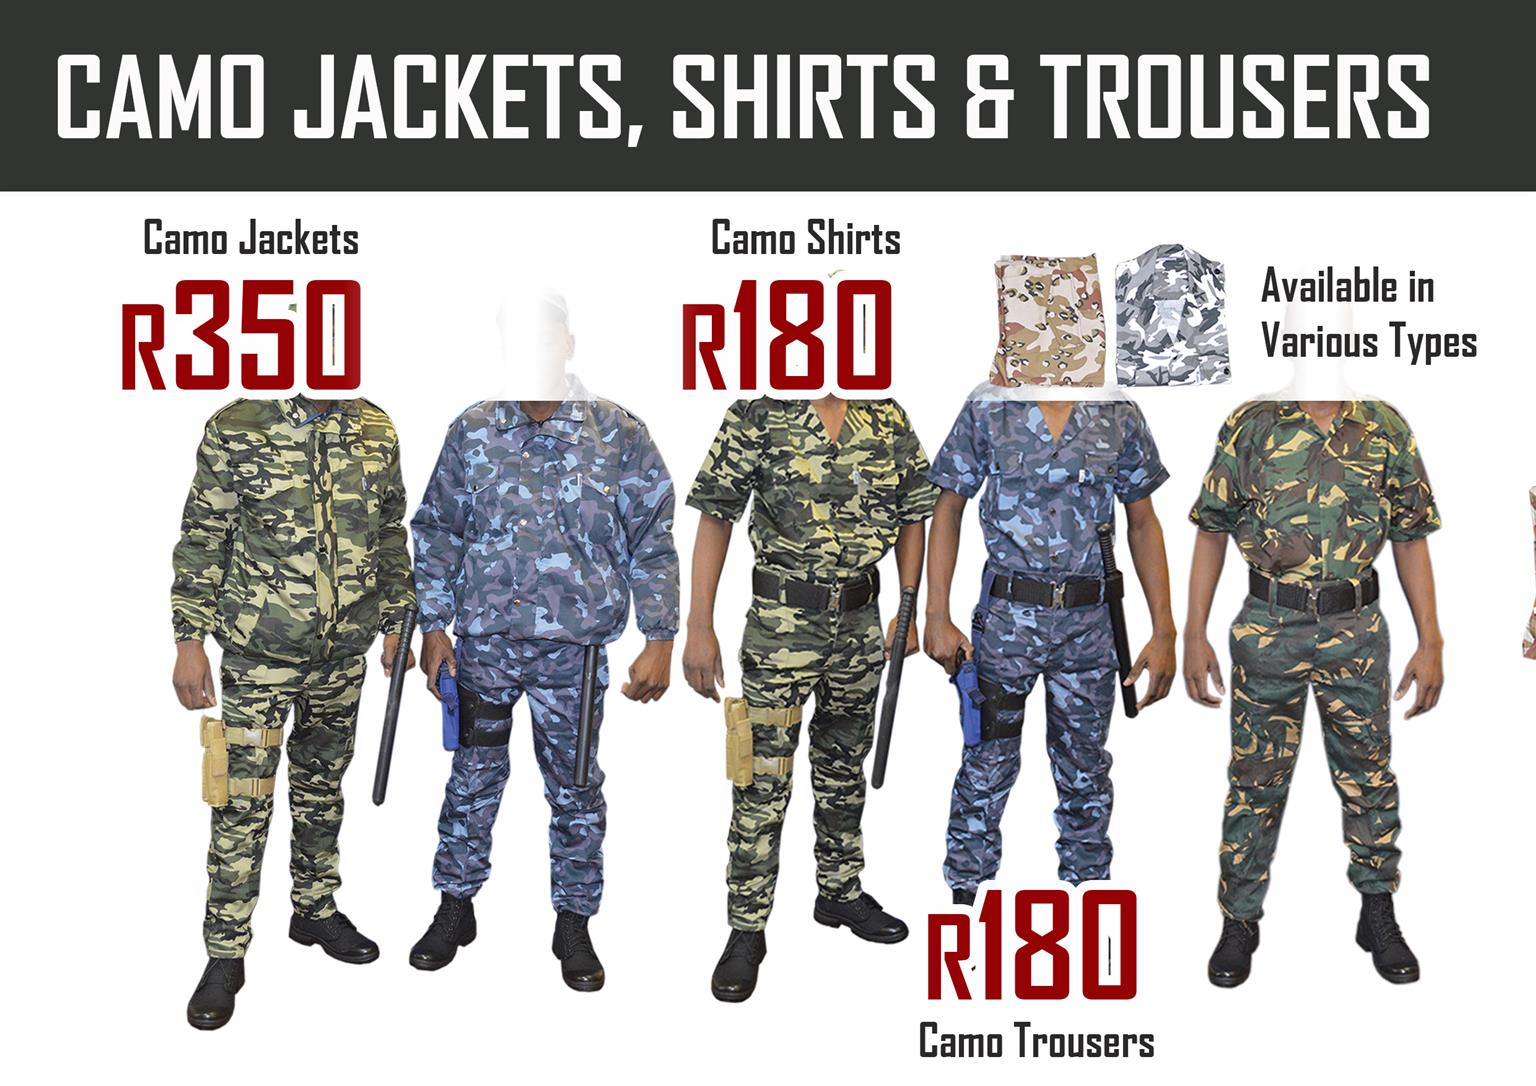 Camo trousers and shirts